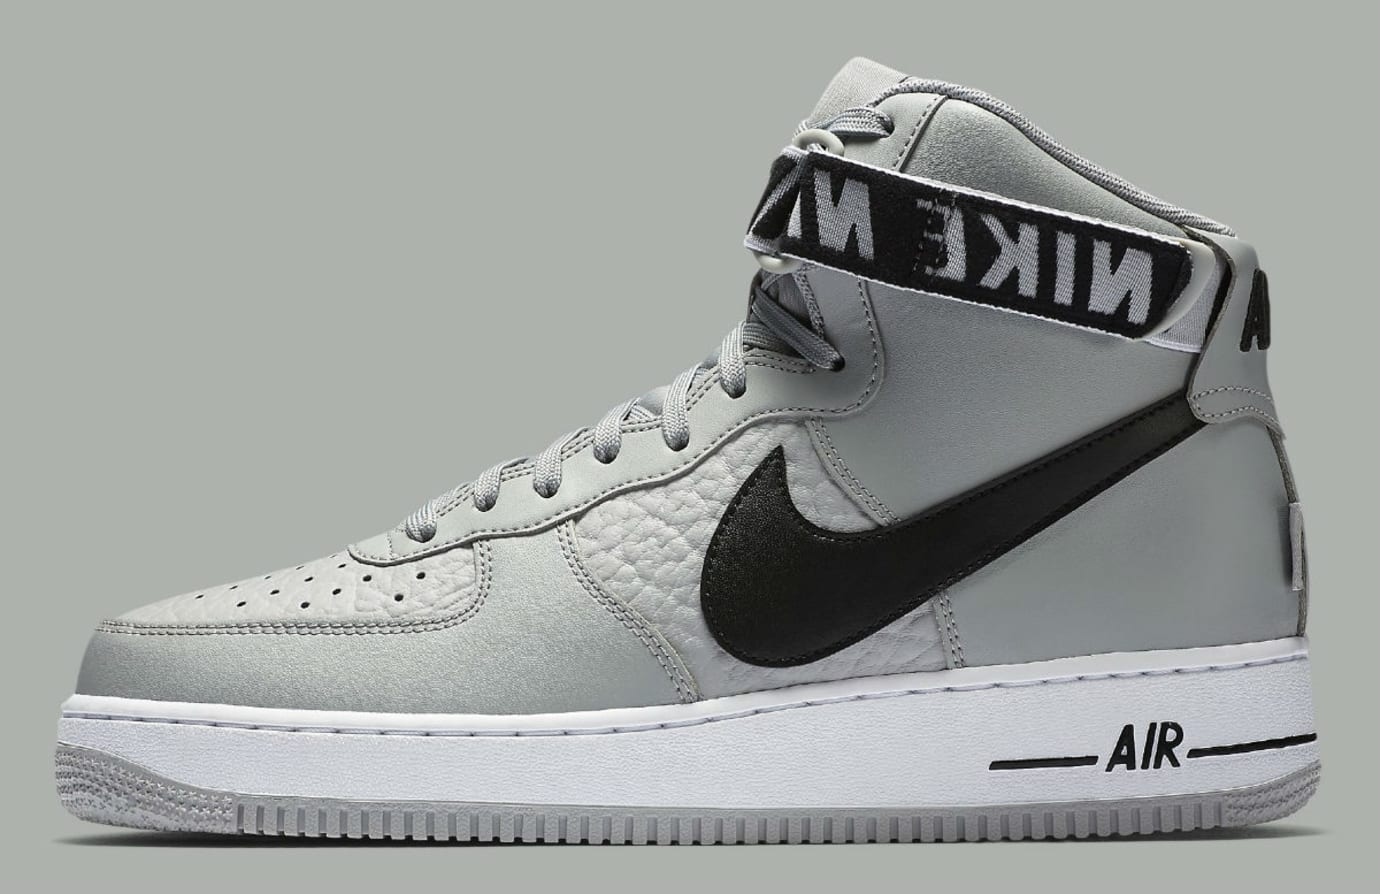 Nike Air Force 1 High NBA Statement Game Release Date Profile 315121-044